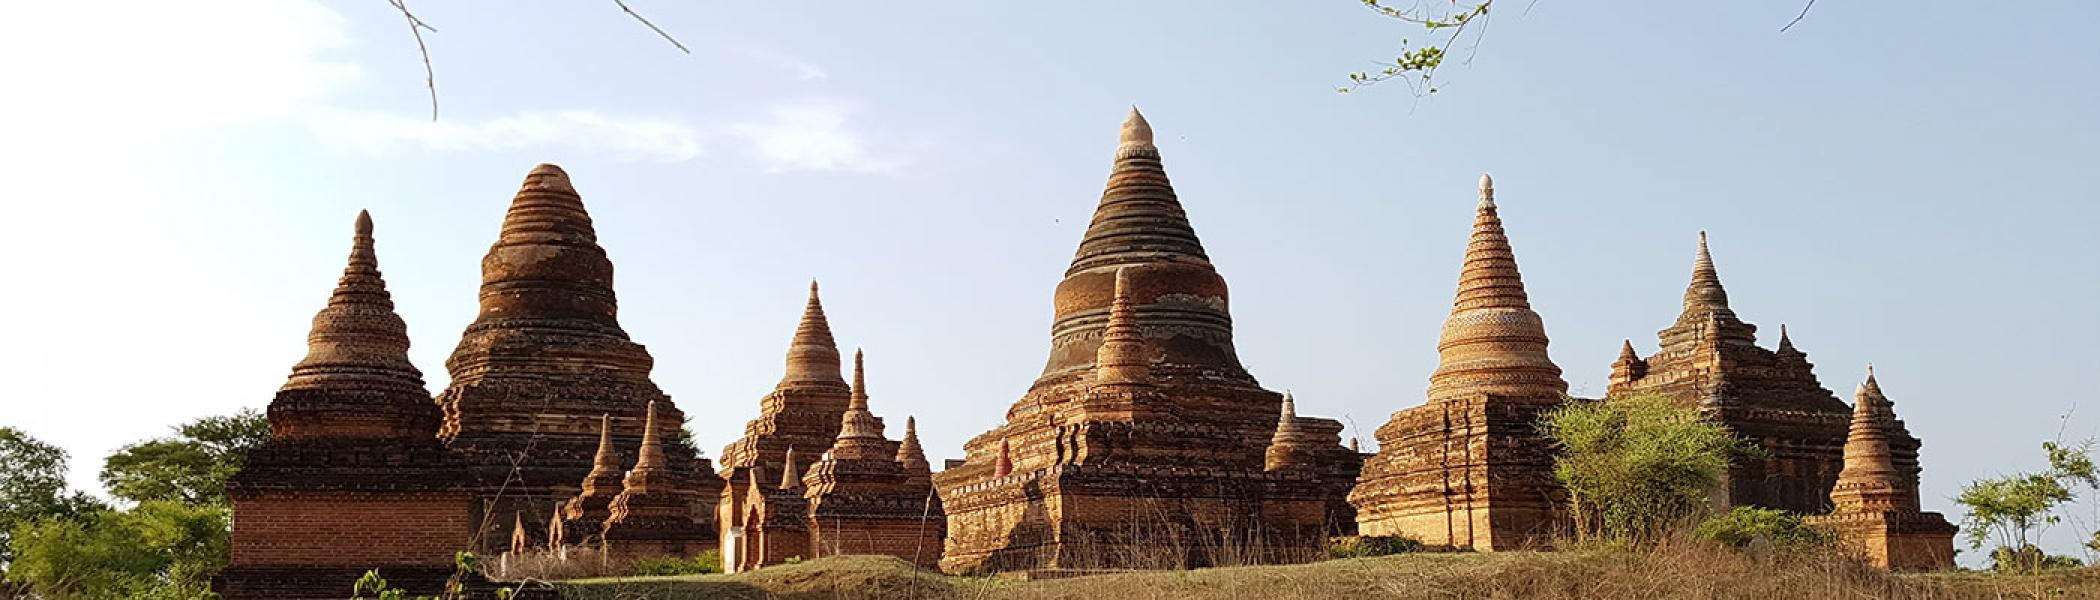 Temples at Bagan, Myanmar